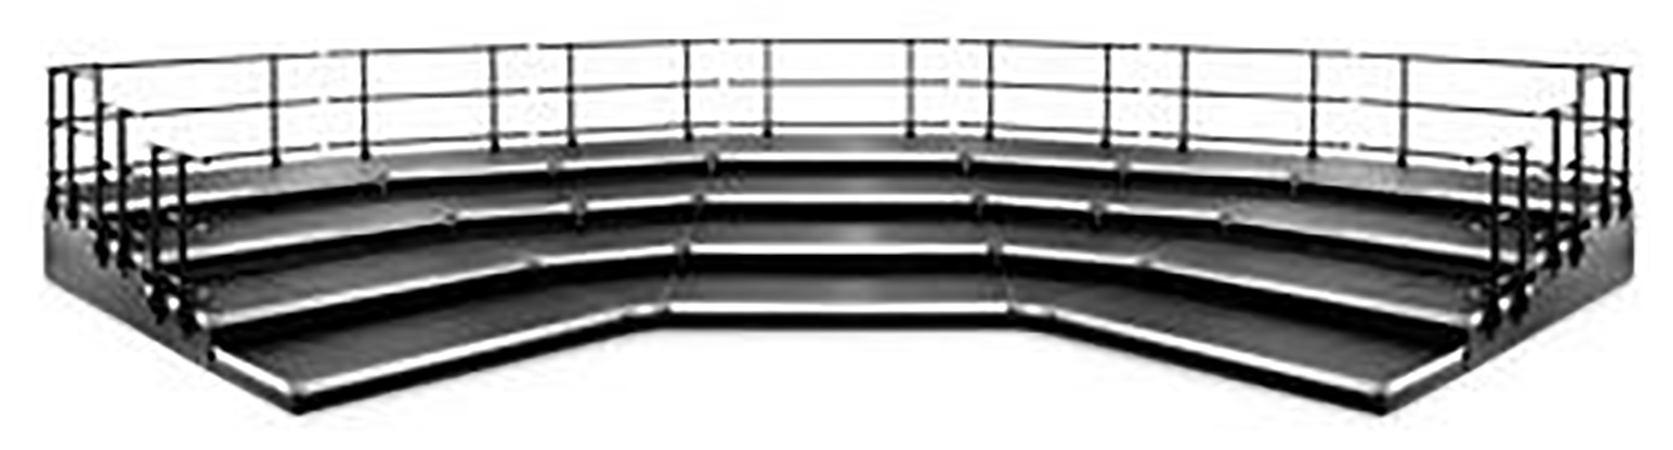 StageTek Deck, 4' Wide